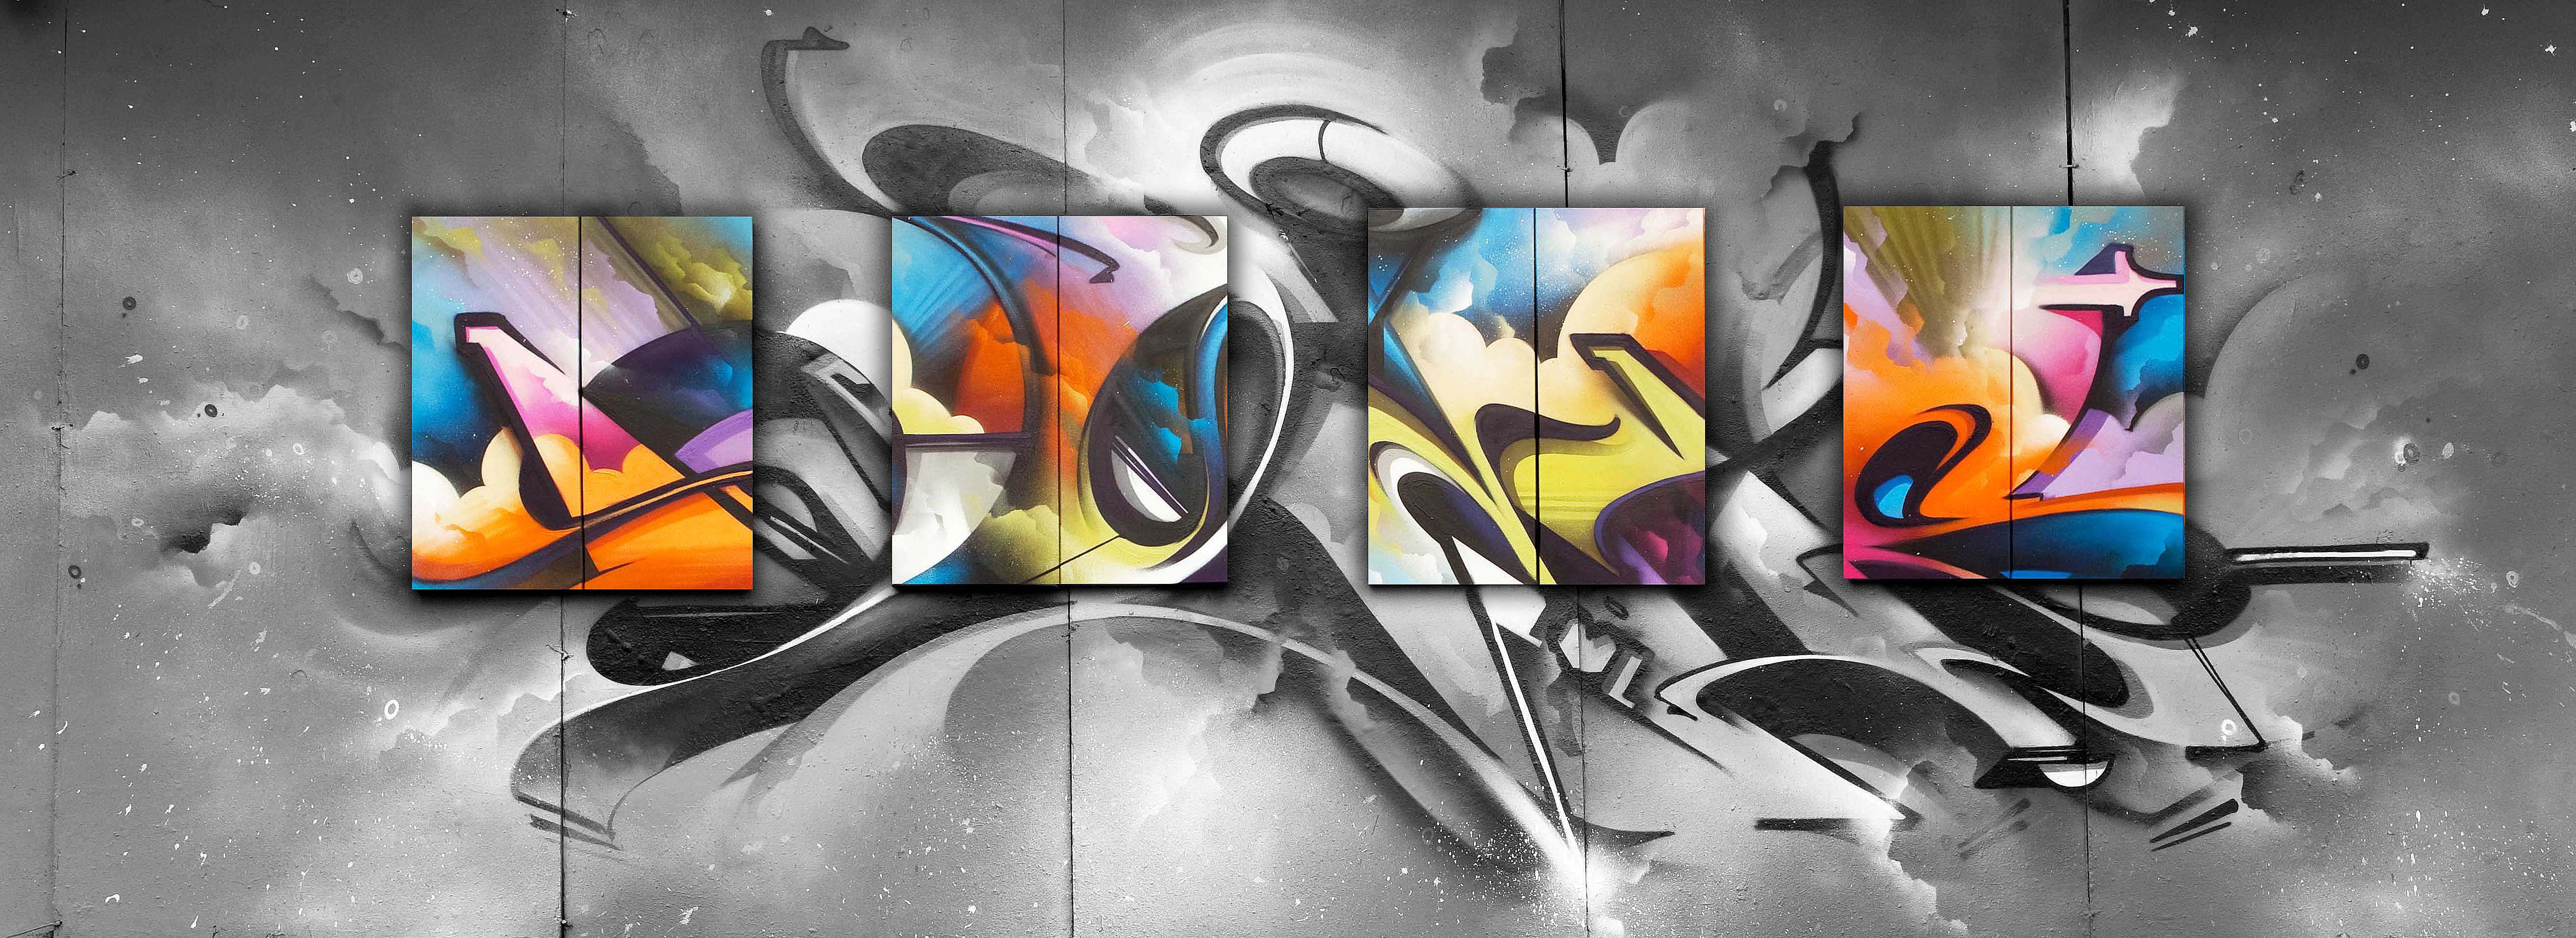 A work by Does - Endless perspectives london uk